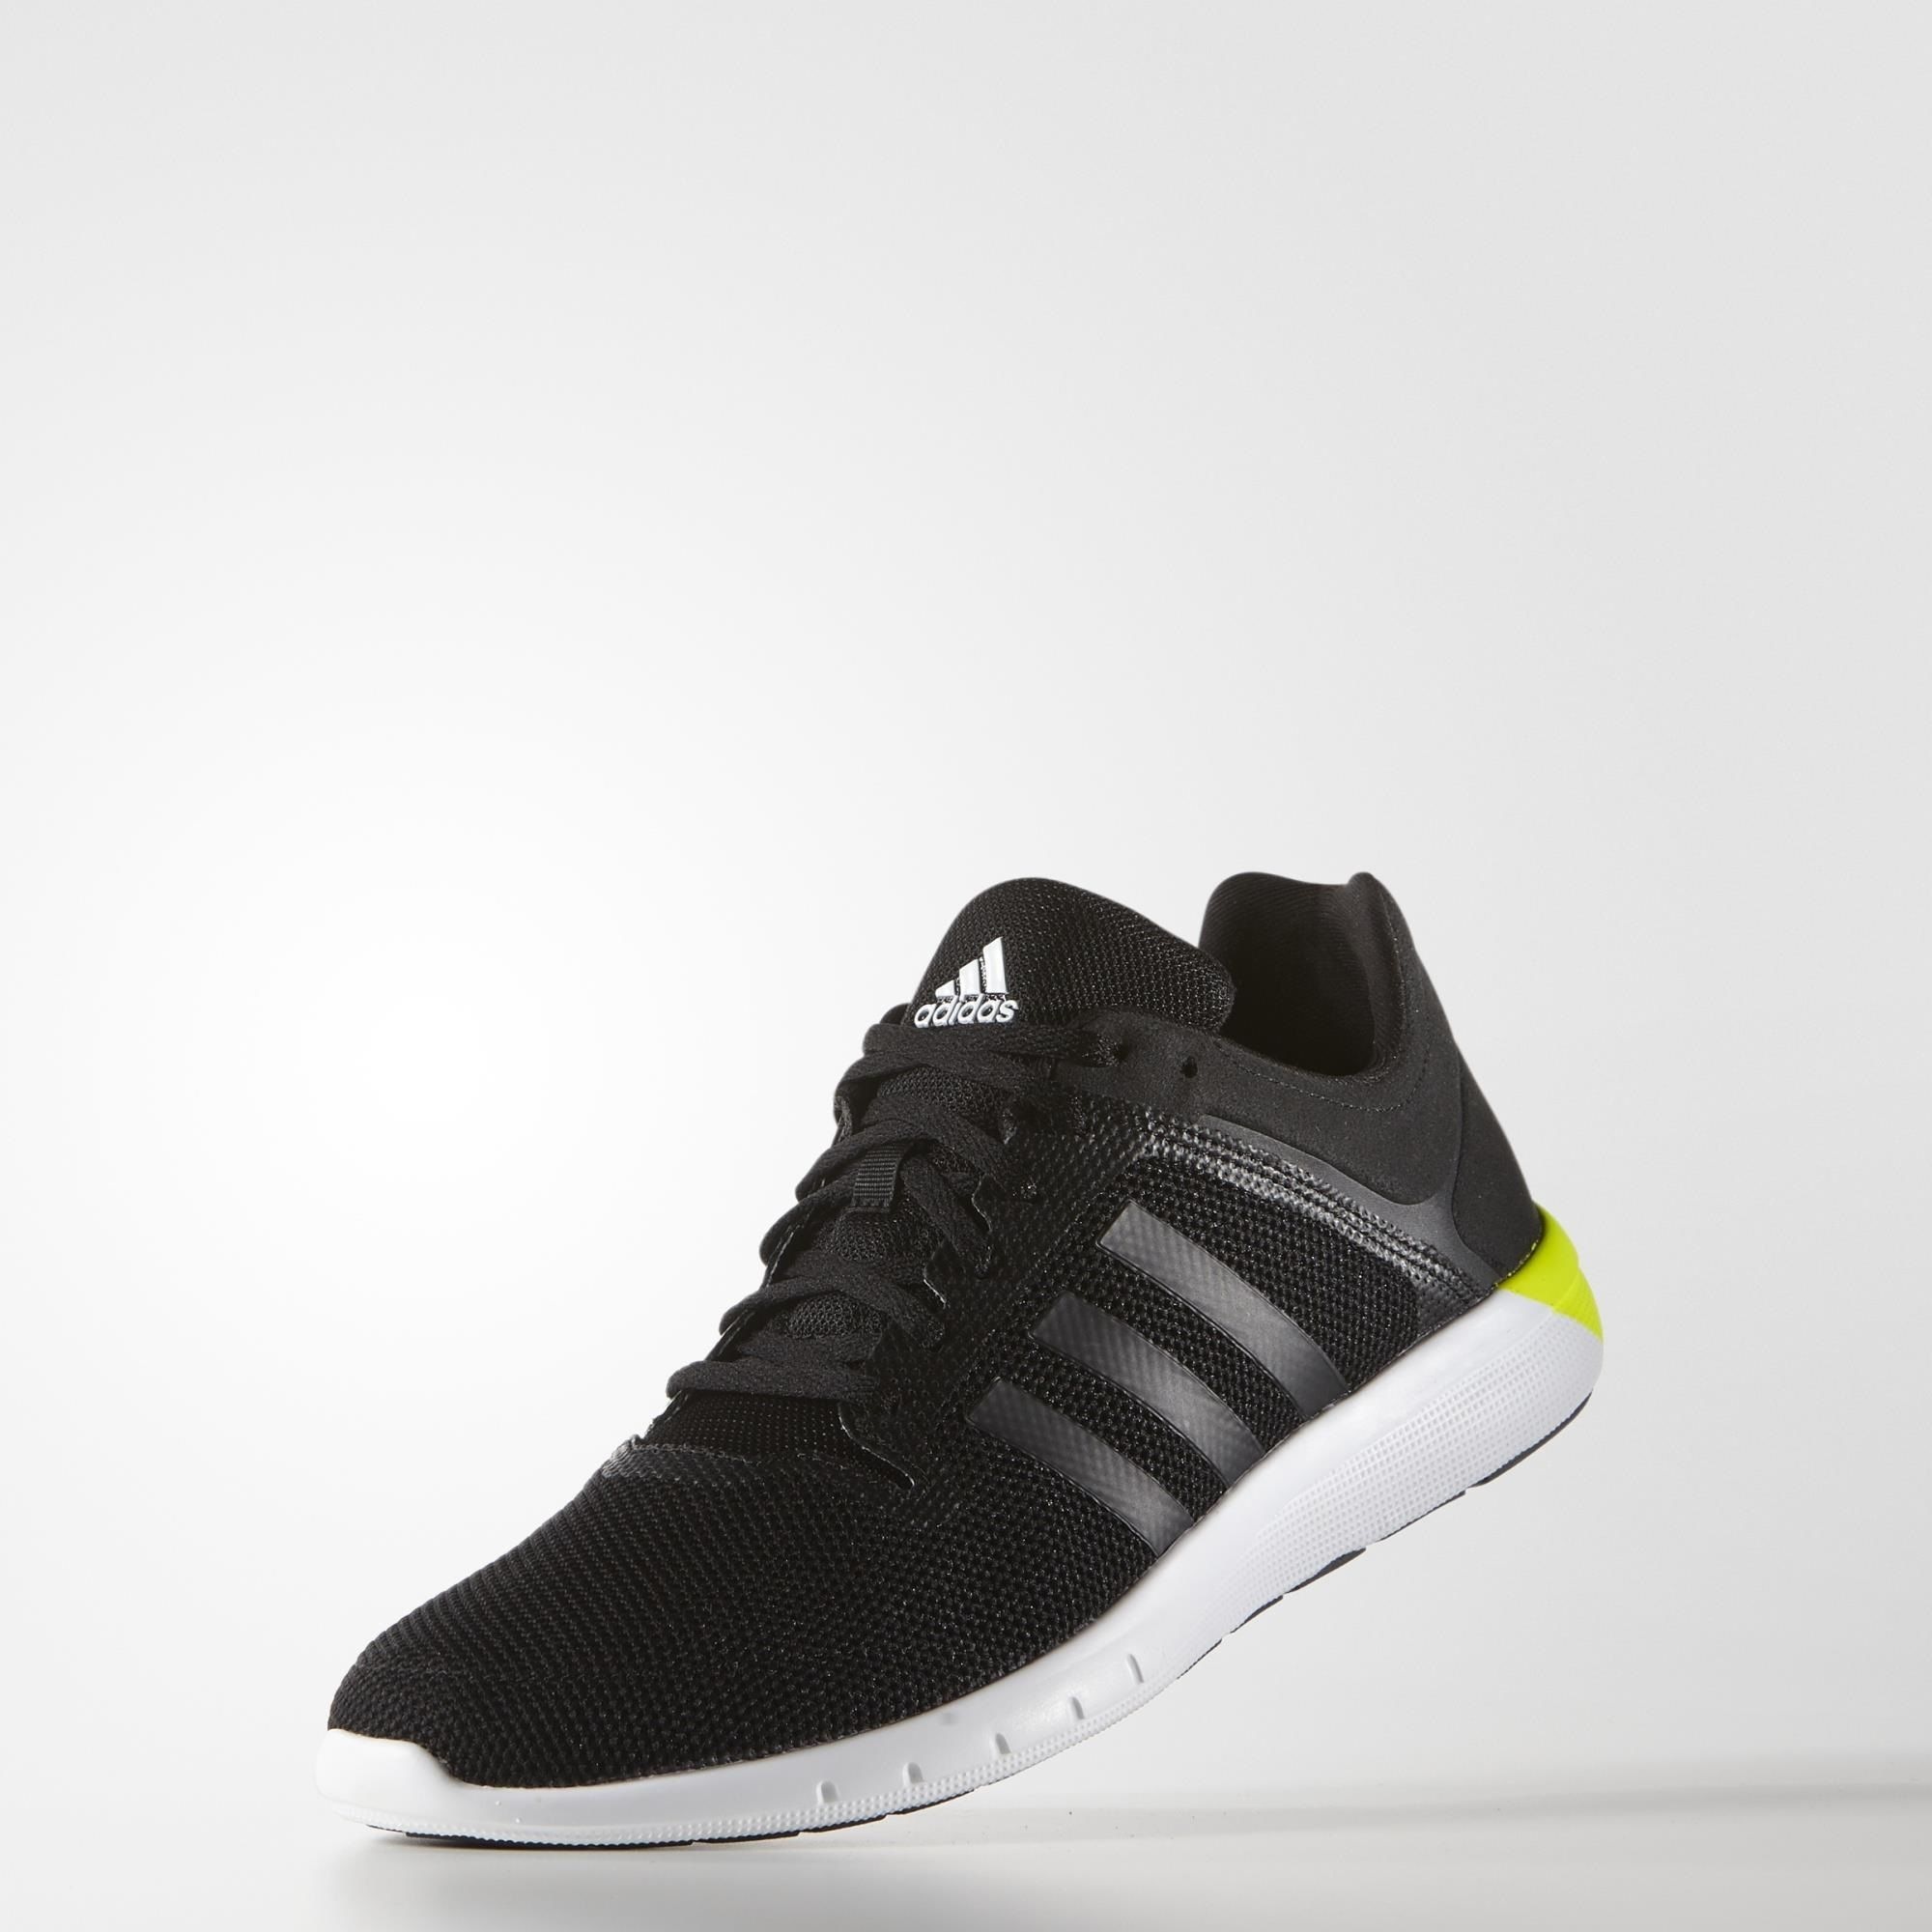 adidas Climacool Fresh 2.0 Shoes - Black | adidas US